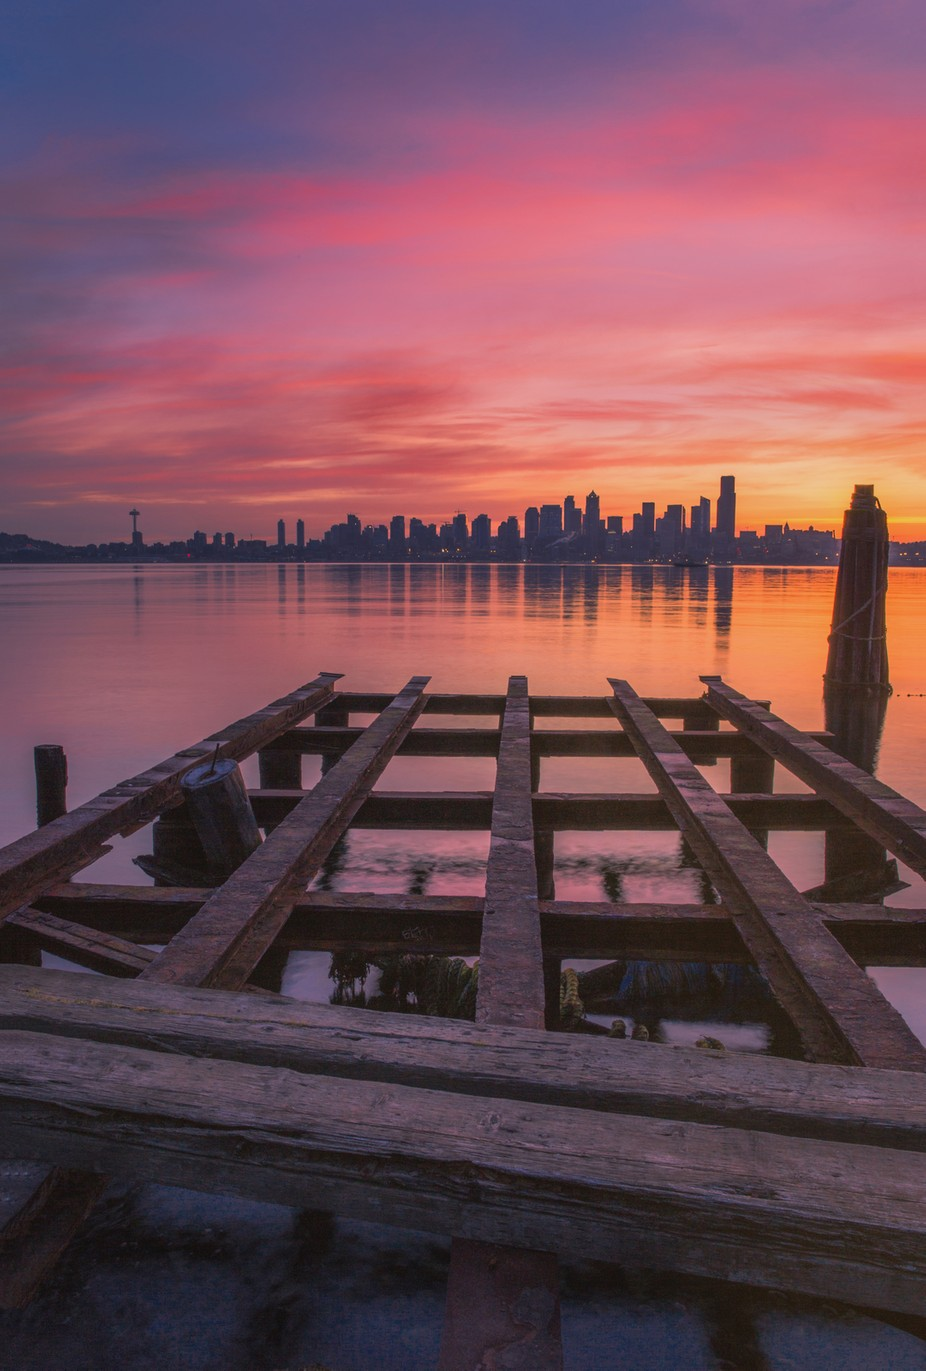 Strawberry Morning by maraleite - Sunset And The City Photo Contest